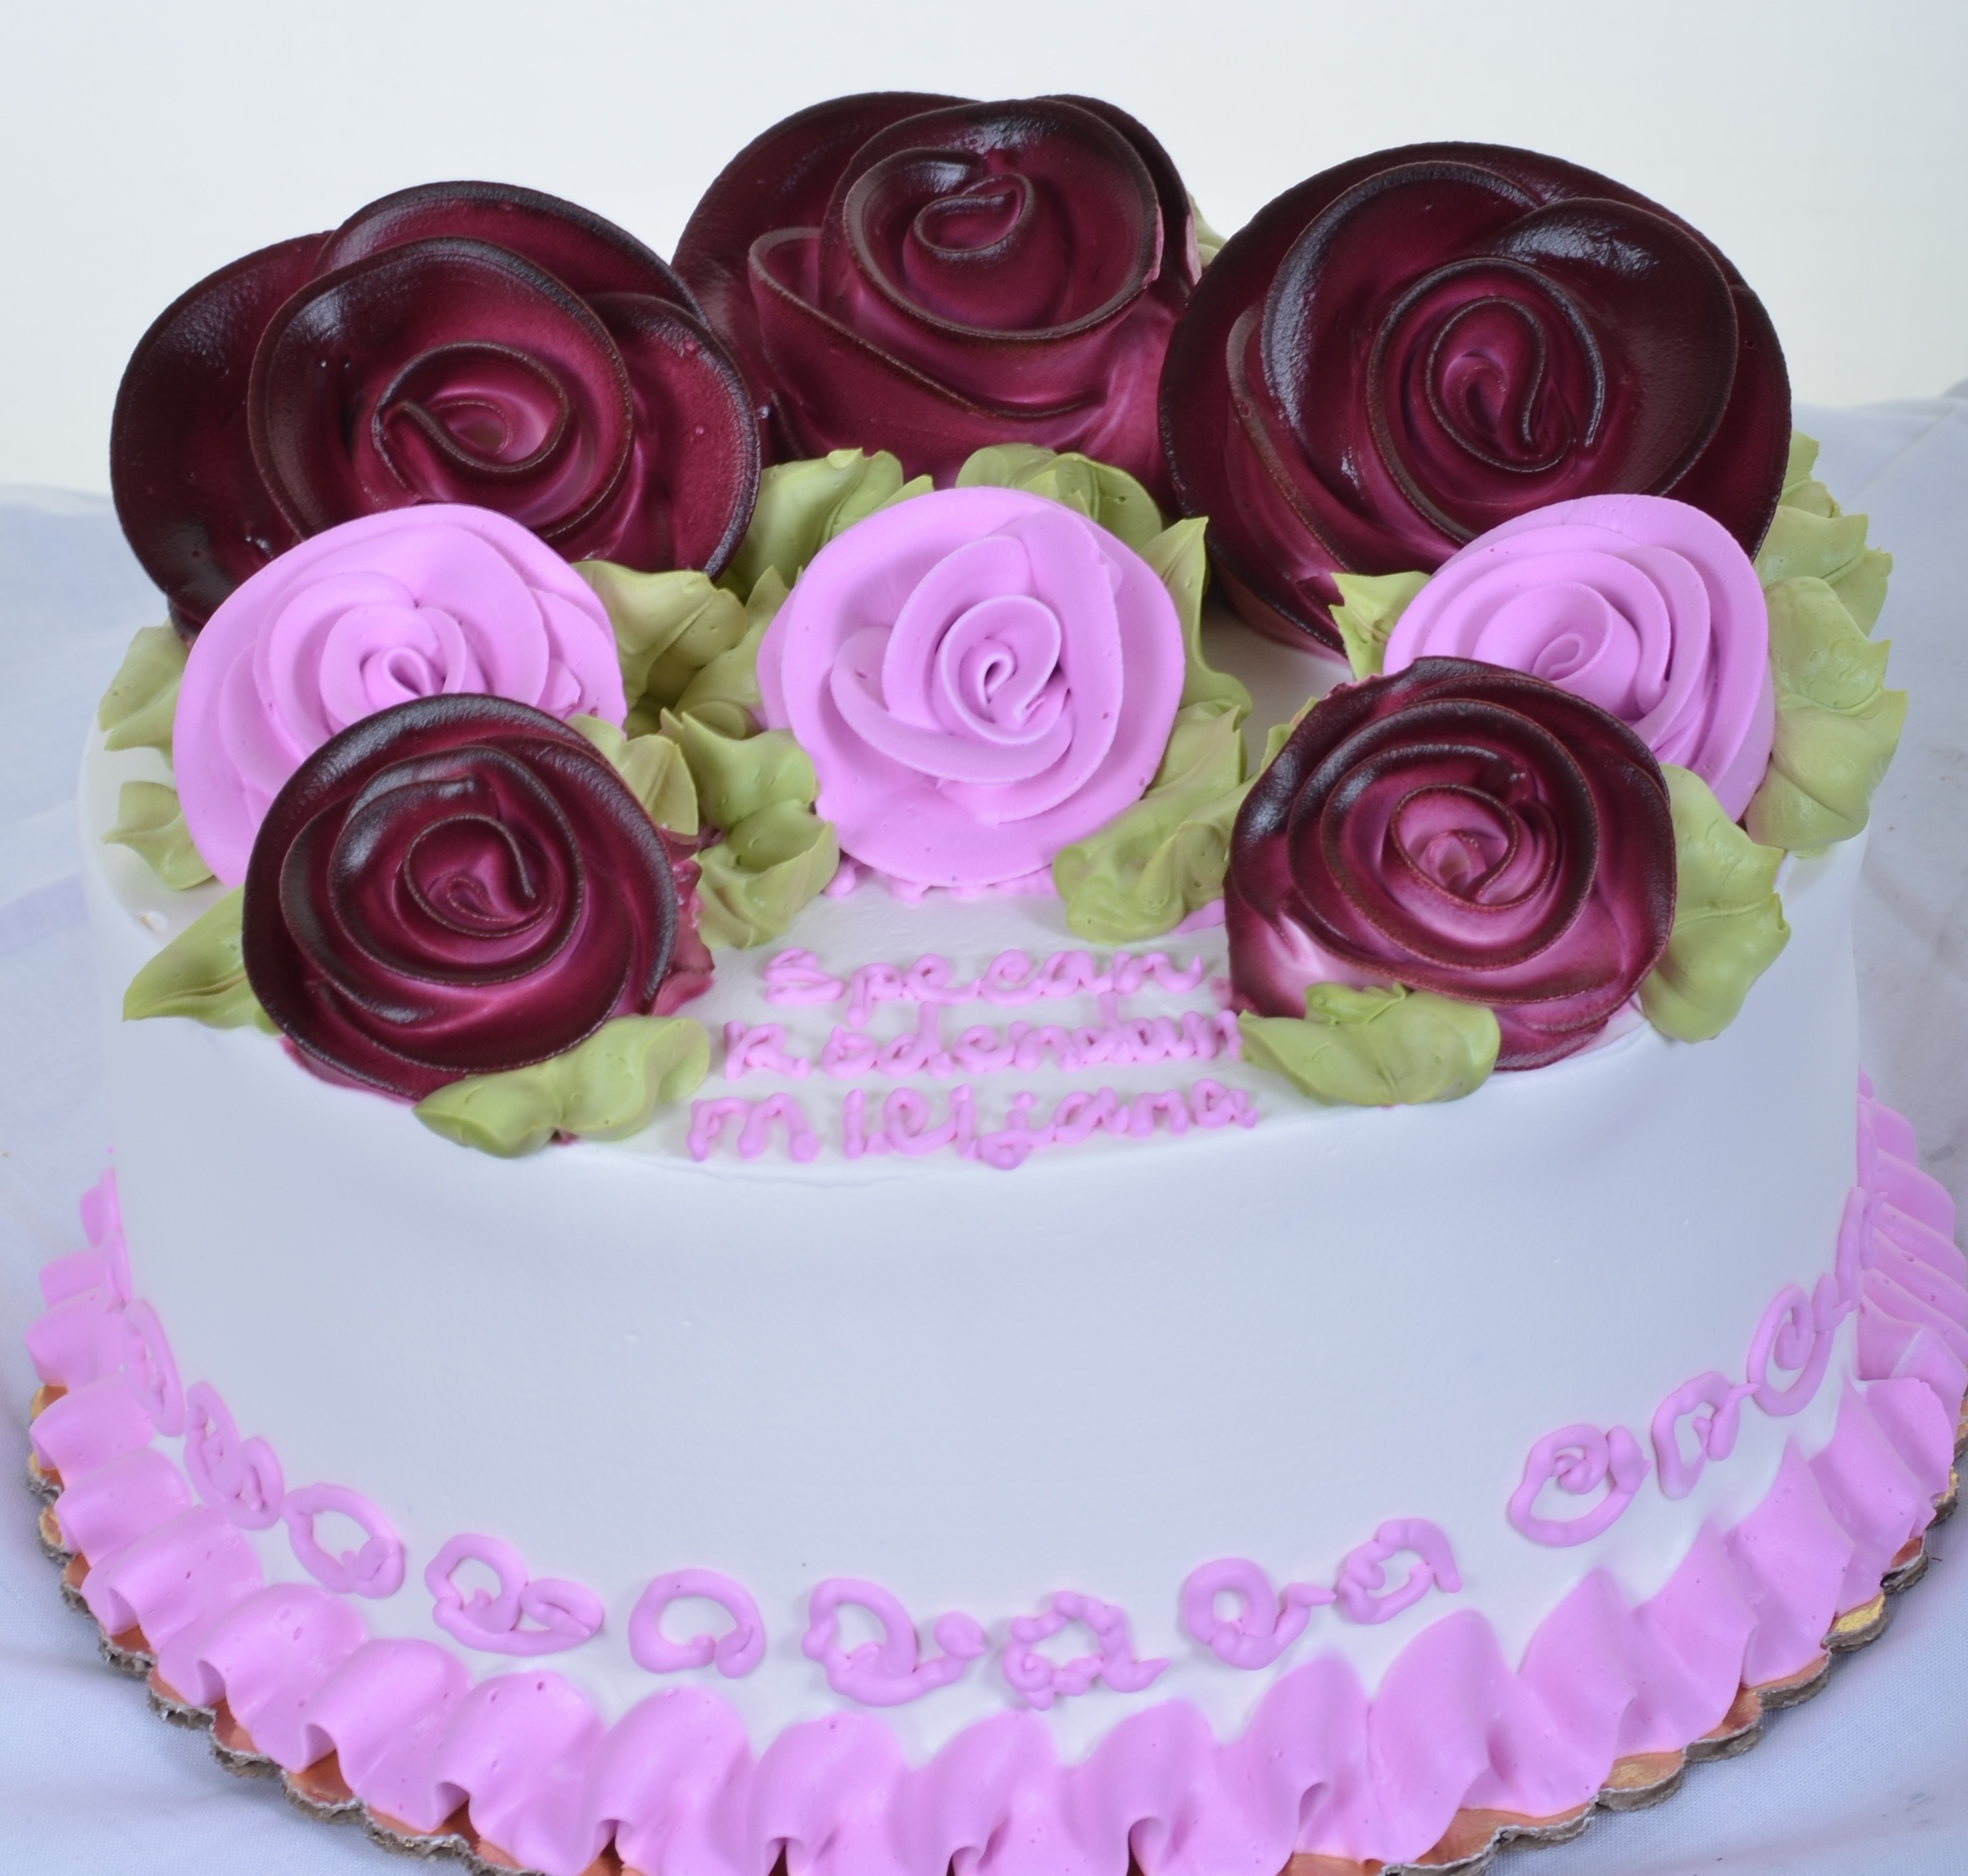 Happy Birthday Cake Roses Brithday Cake